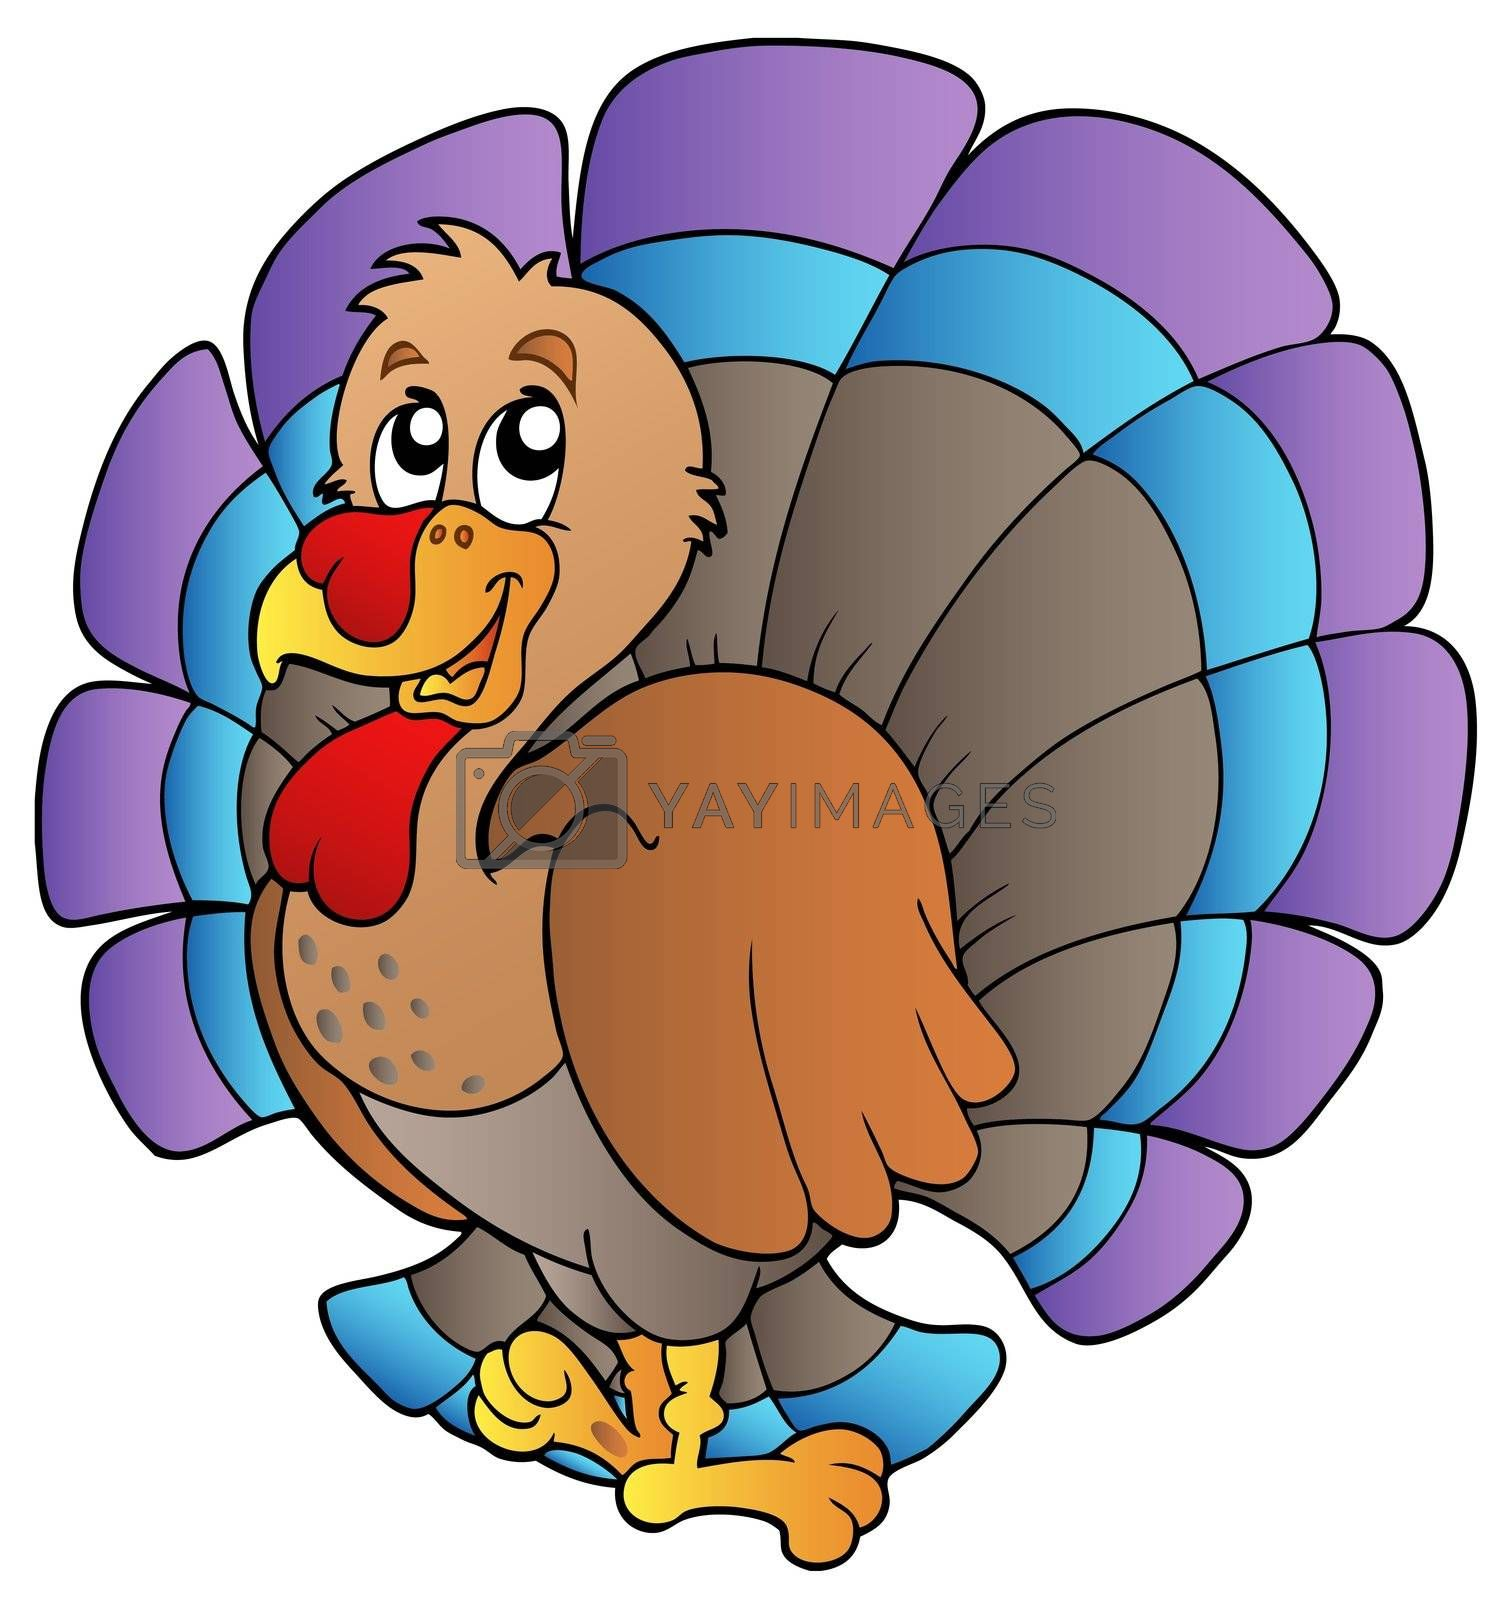 Happy cartoon turkey - vector illustration.